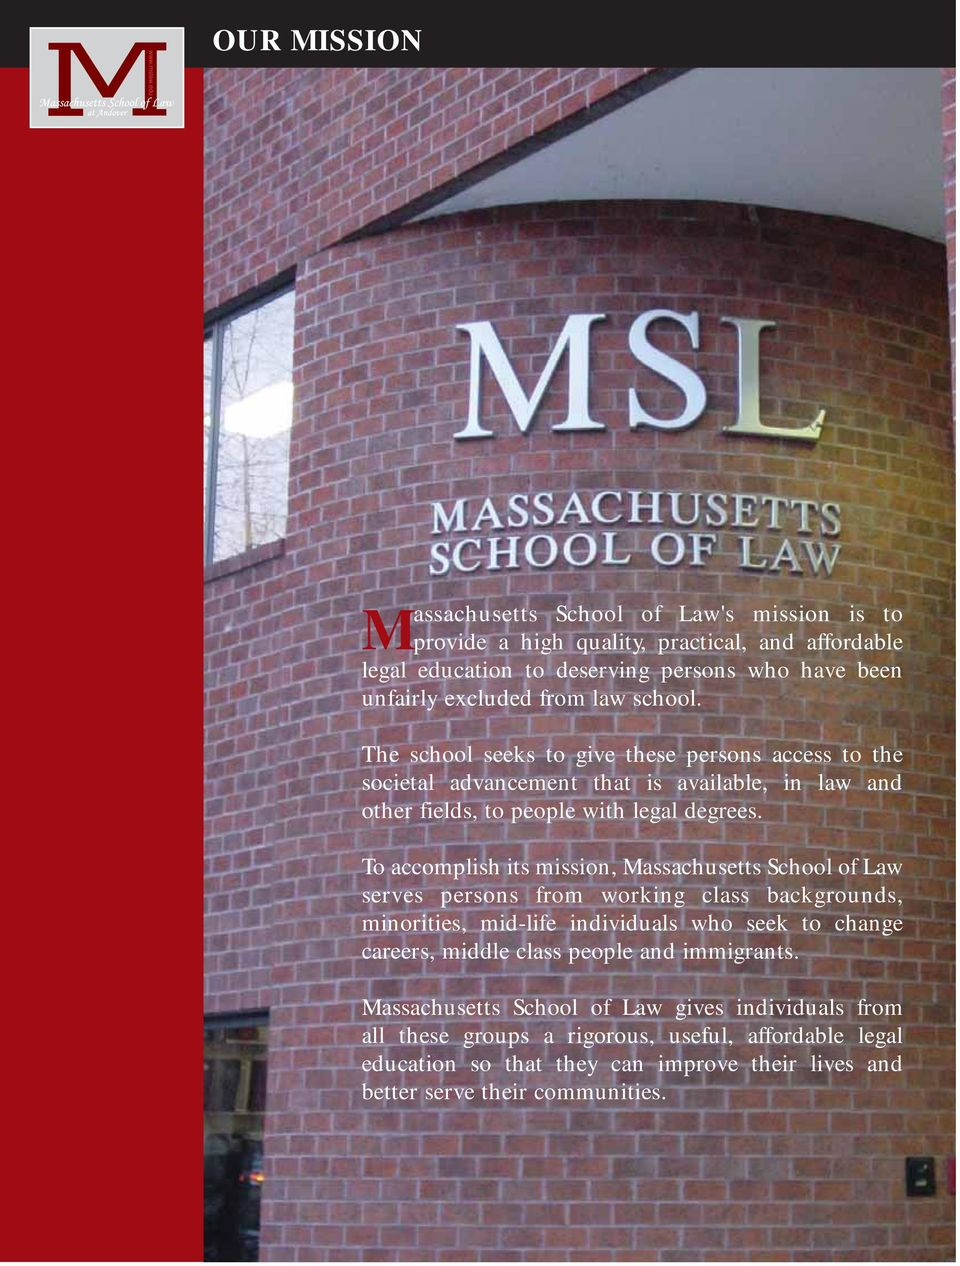 To accomplish its mission, Massachusetts School of Law serves persons from working class backgrounds, minorities, mid-life individuals who seek to change careers, middle class